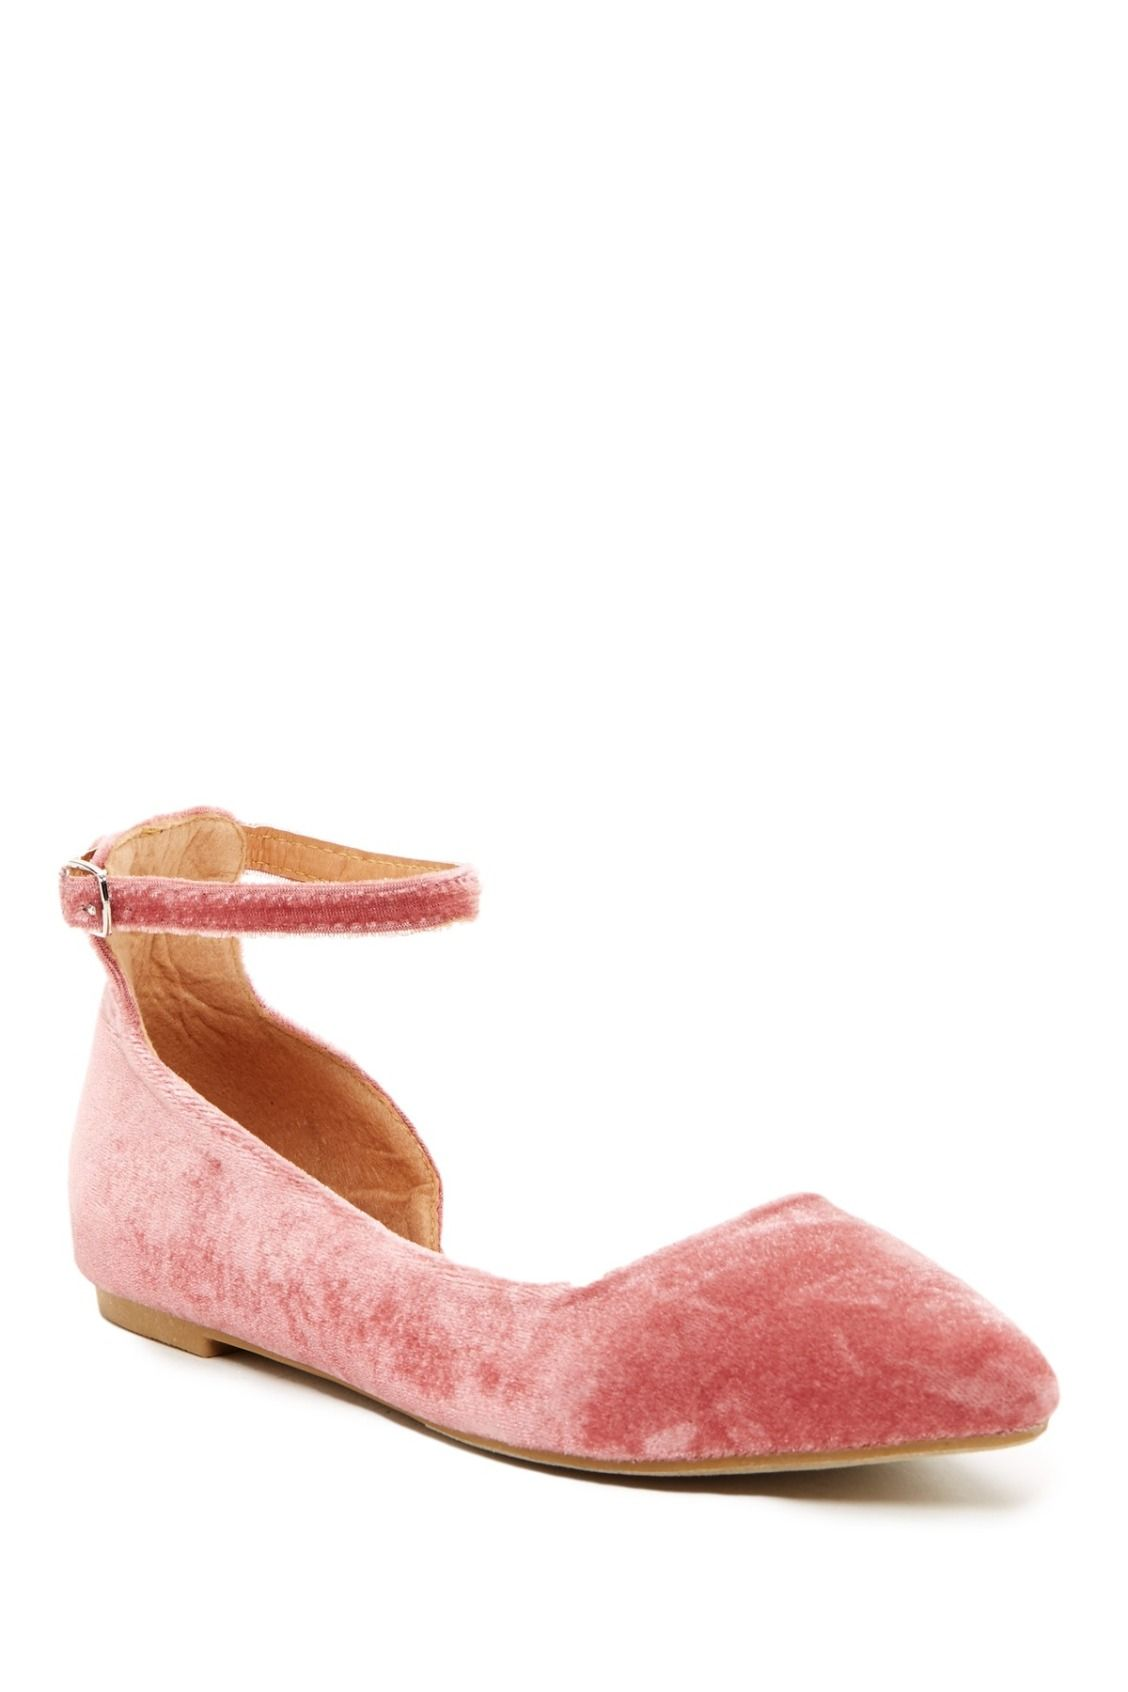 Swooning over these Pink Velvet Yoki Urban Flats